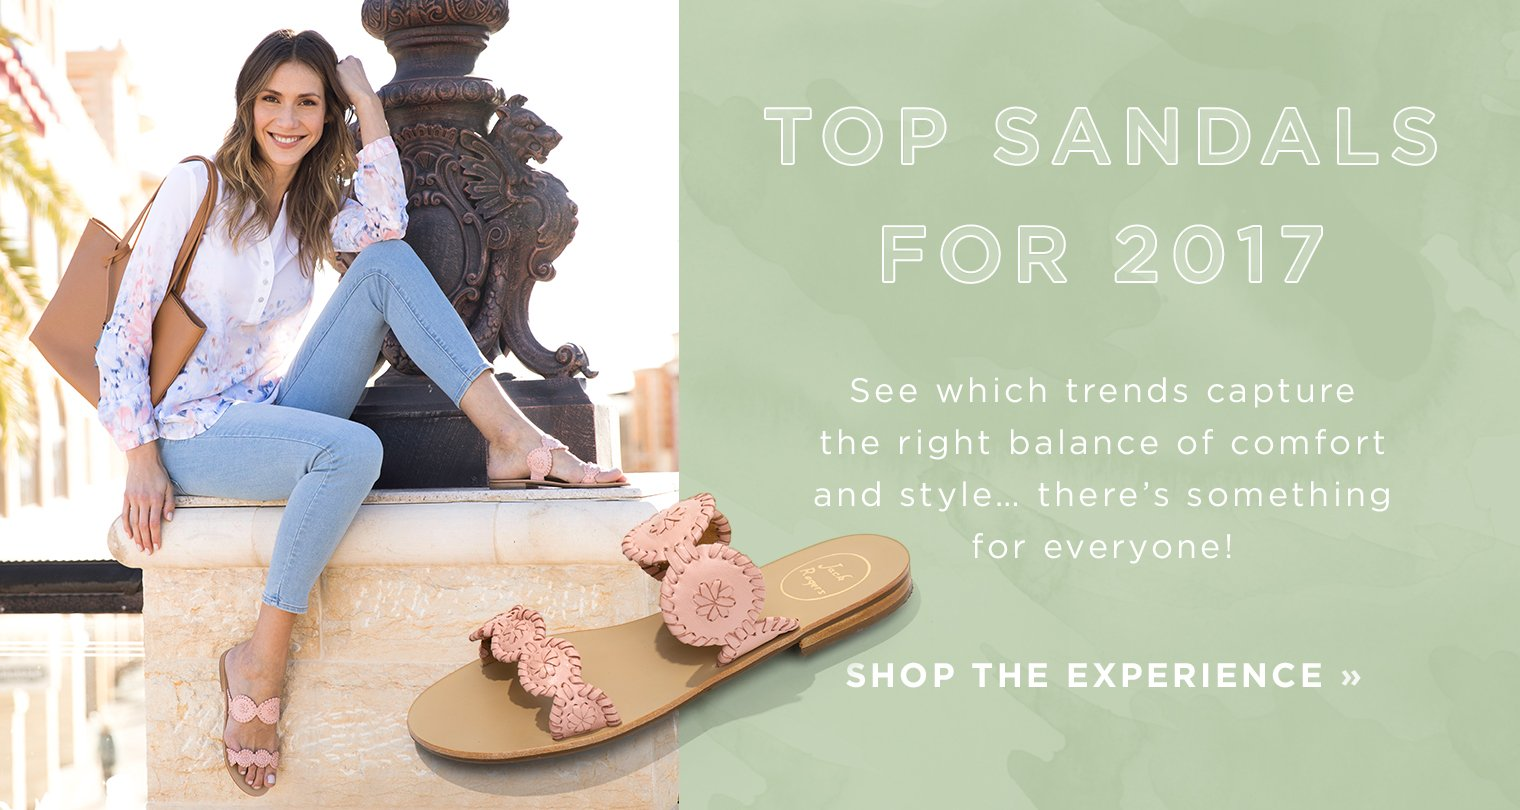 Top Sandals 2017. See which trends capture the right amount of comfort and style. There's something for everyone. Shop Now.